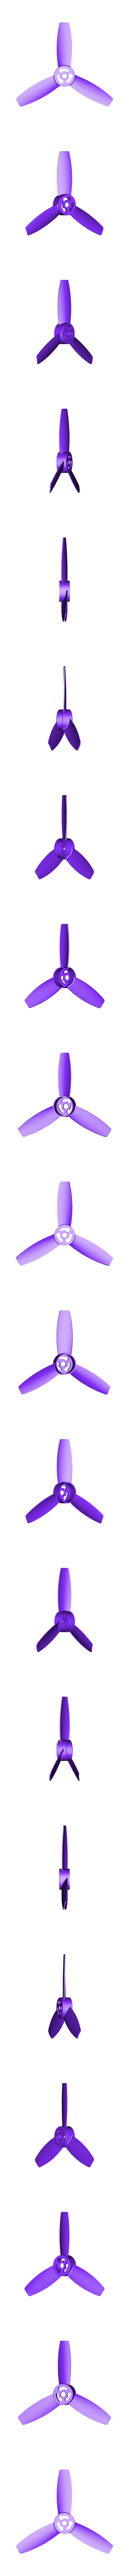 Propeller_without_hole.stl Download free STL file Replacement propellers for the Parrot Bebop • 3D print model, Alessandro_Palma